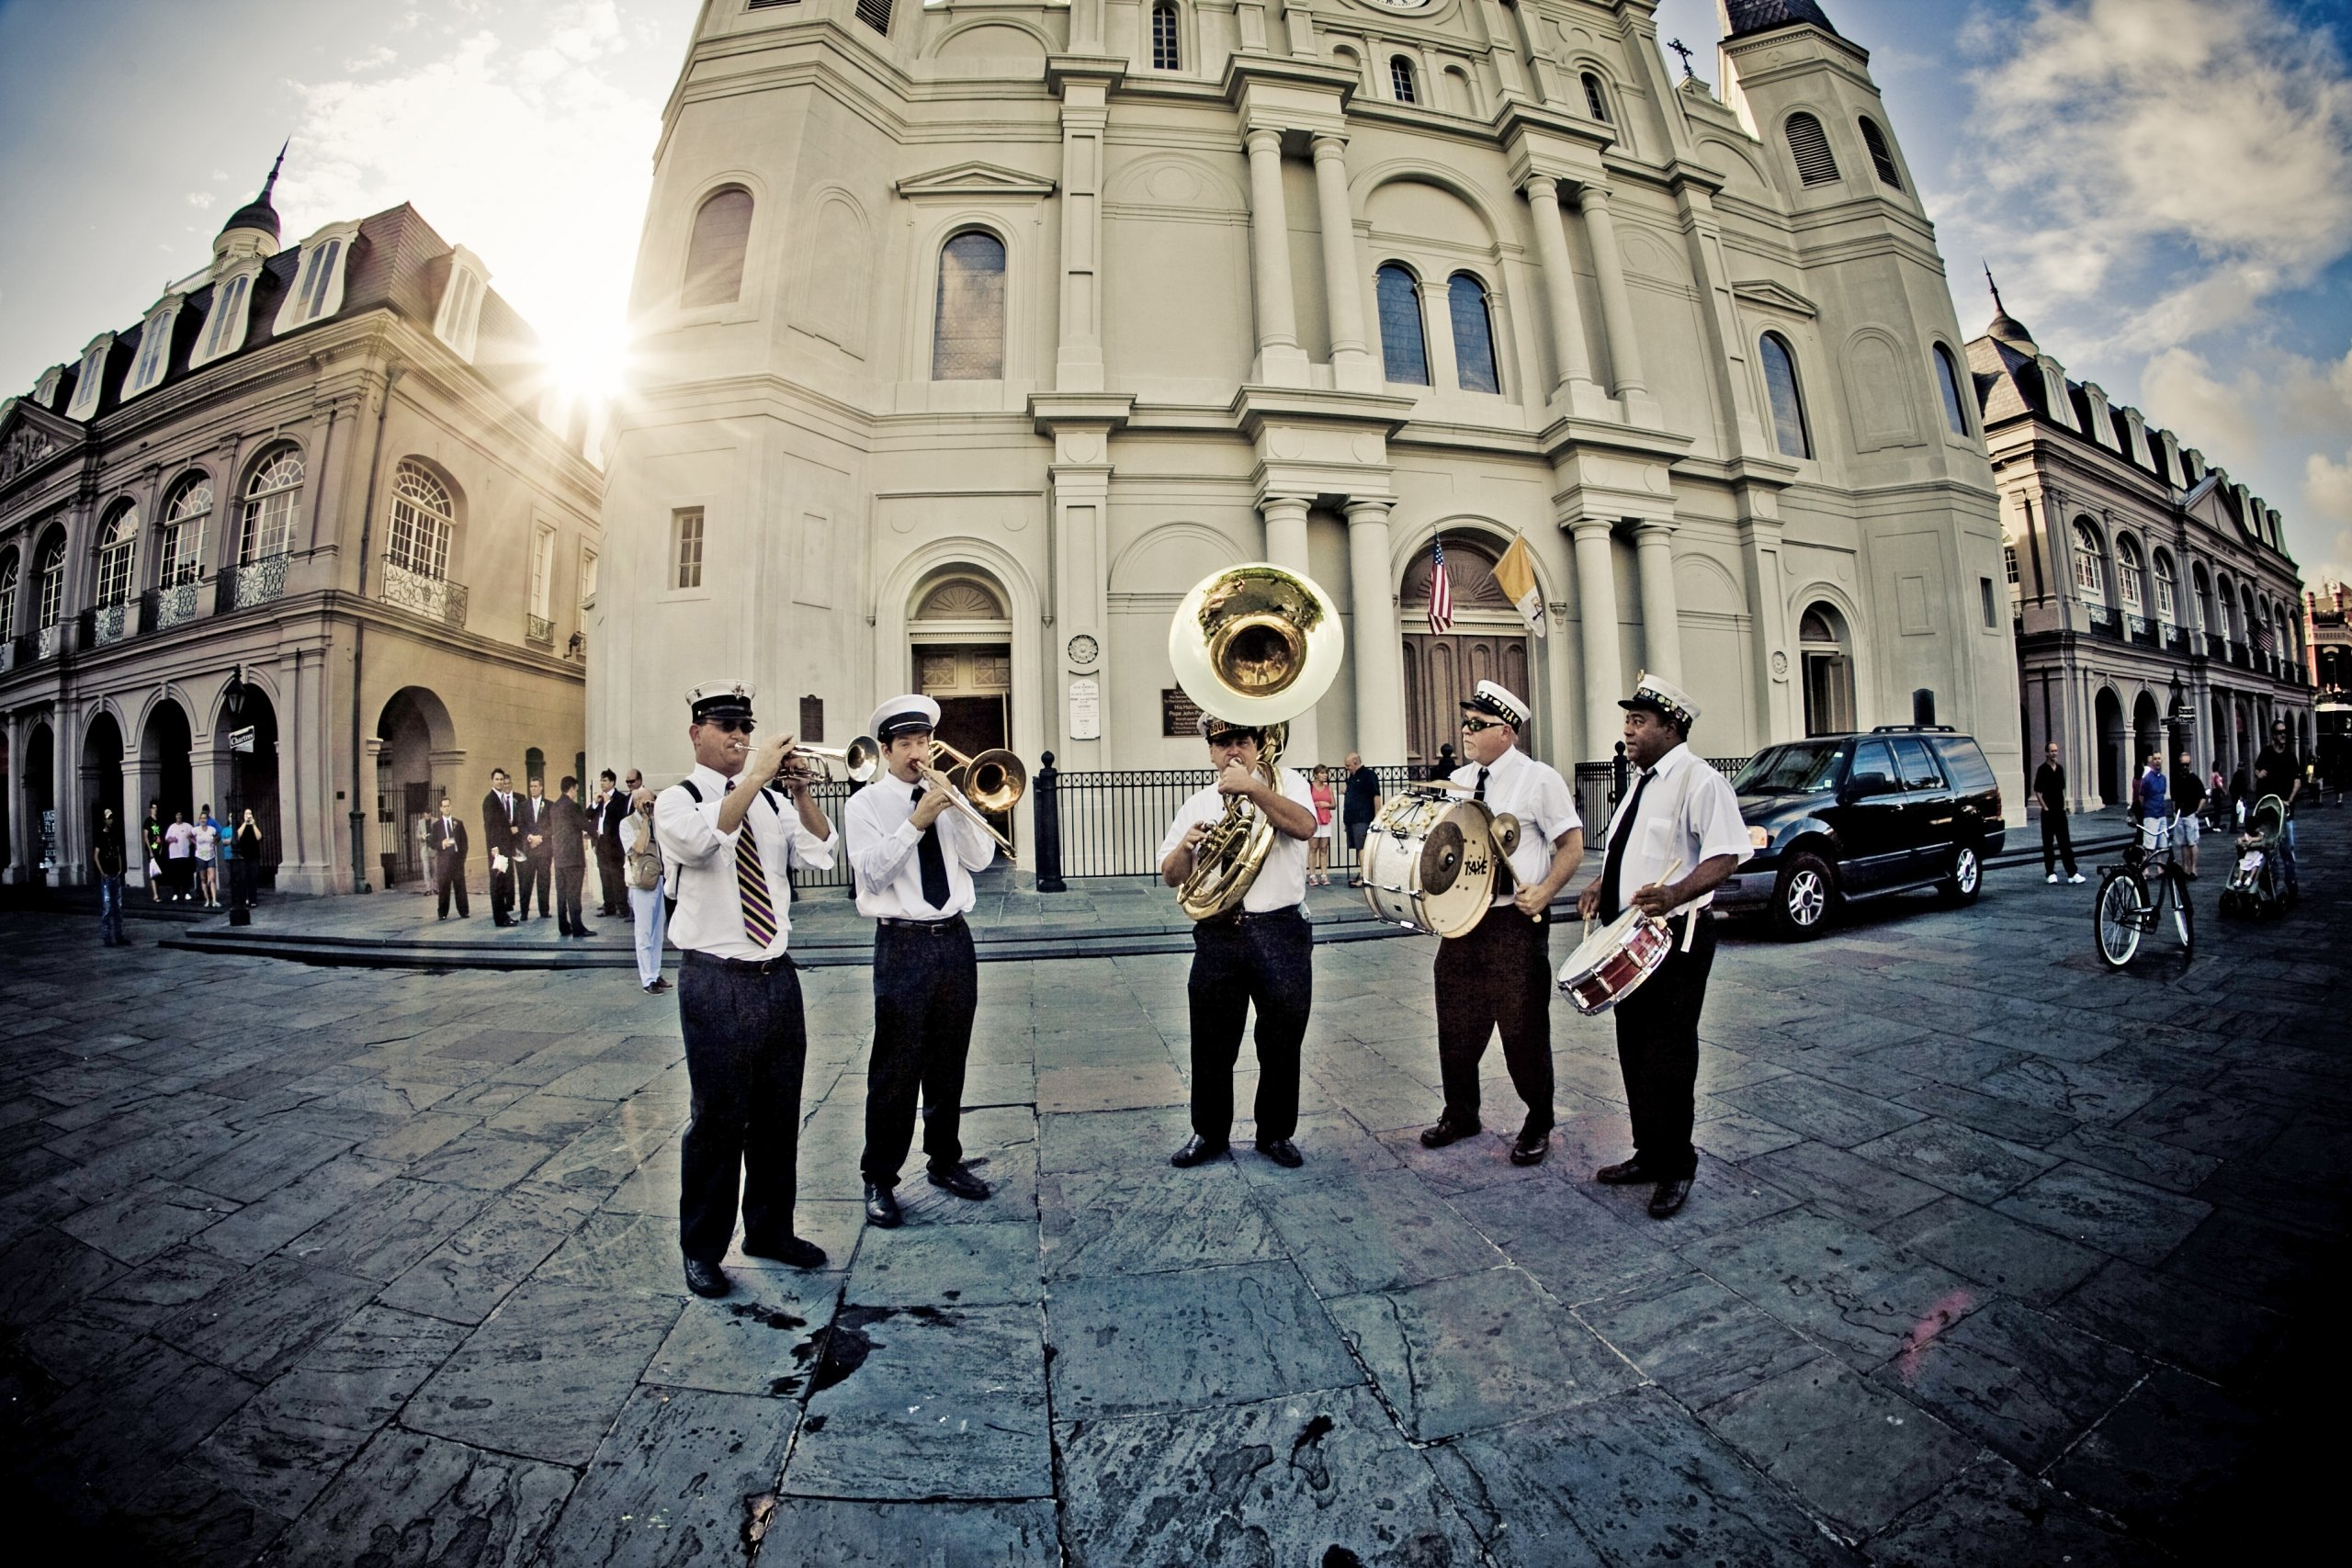 Five men playing instruments in a public square